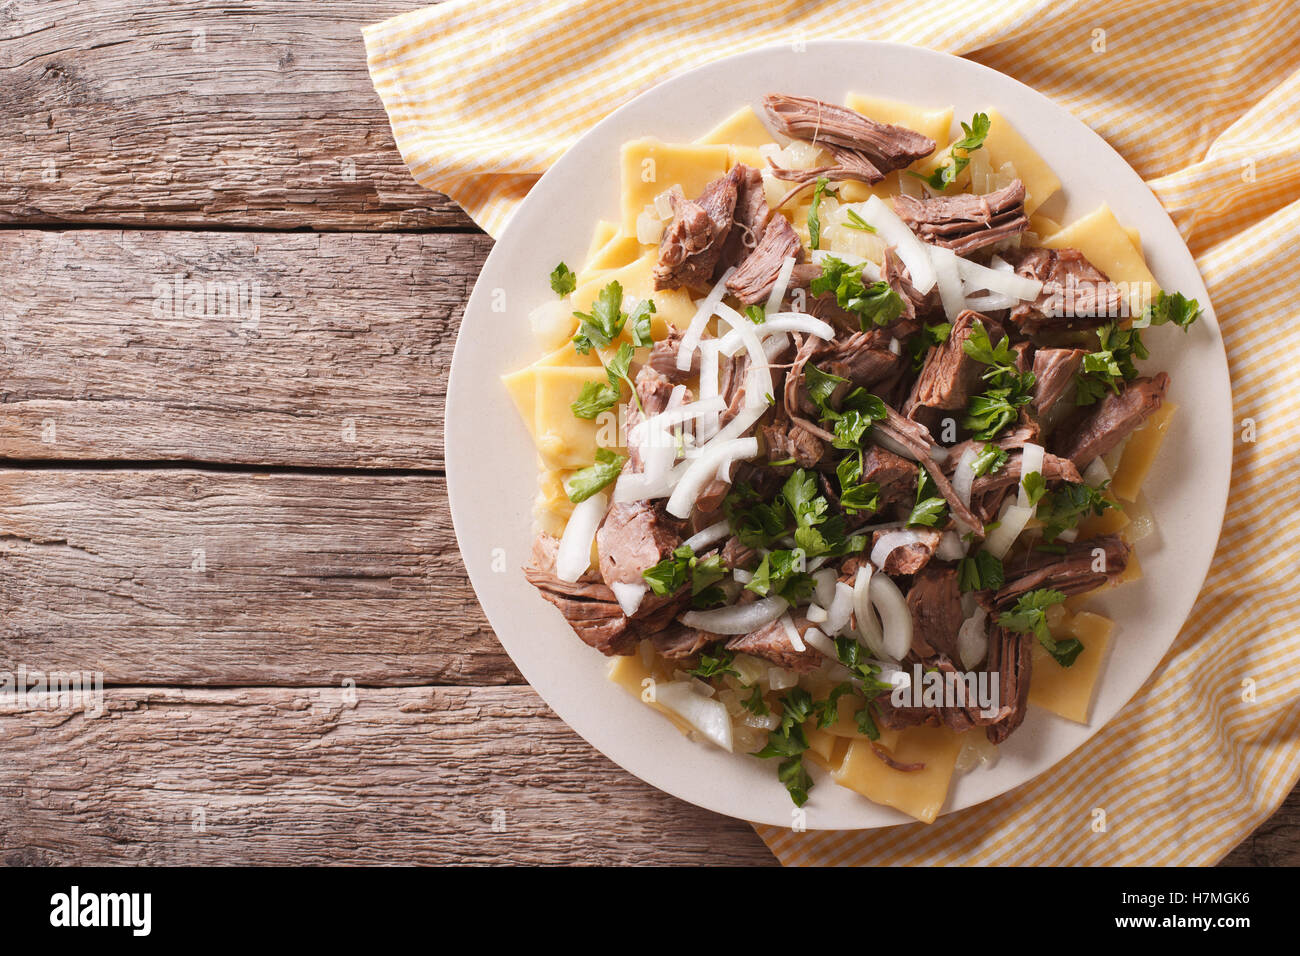 Beshbarmak dish: noodles with lamb and onion close-up on a plate on the table. horizontal top view - Stock Image